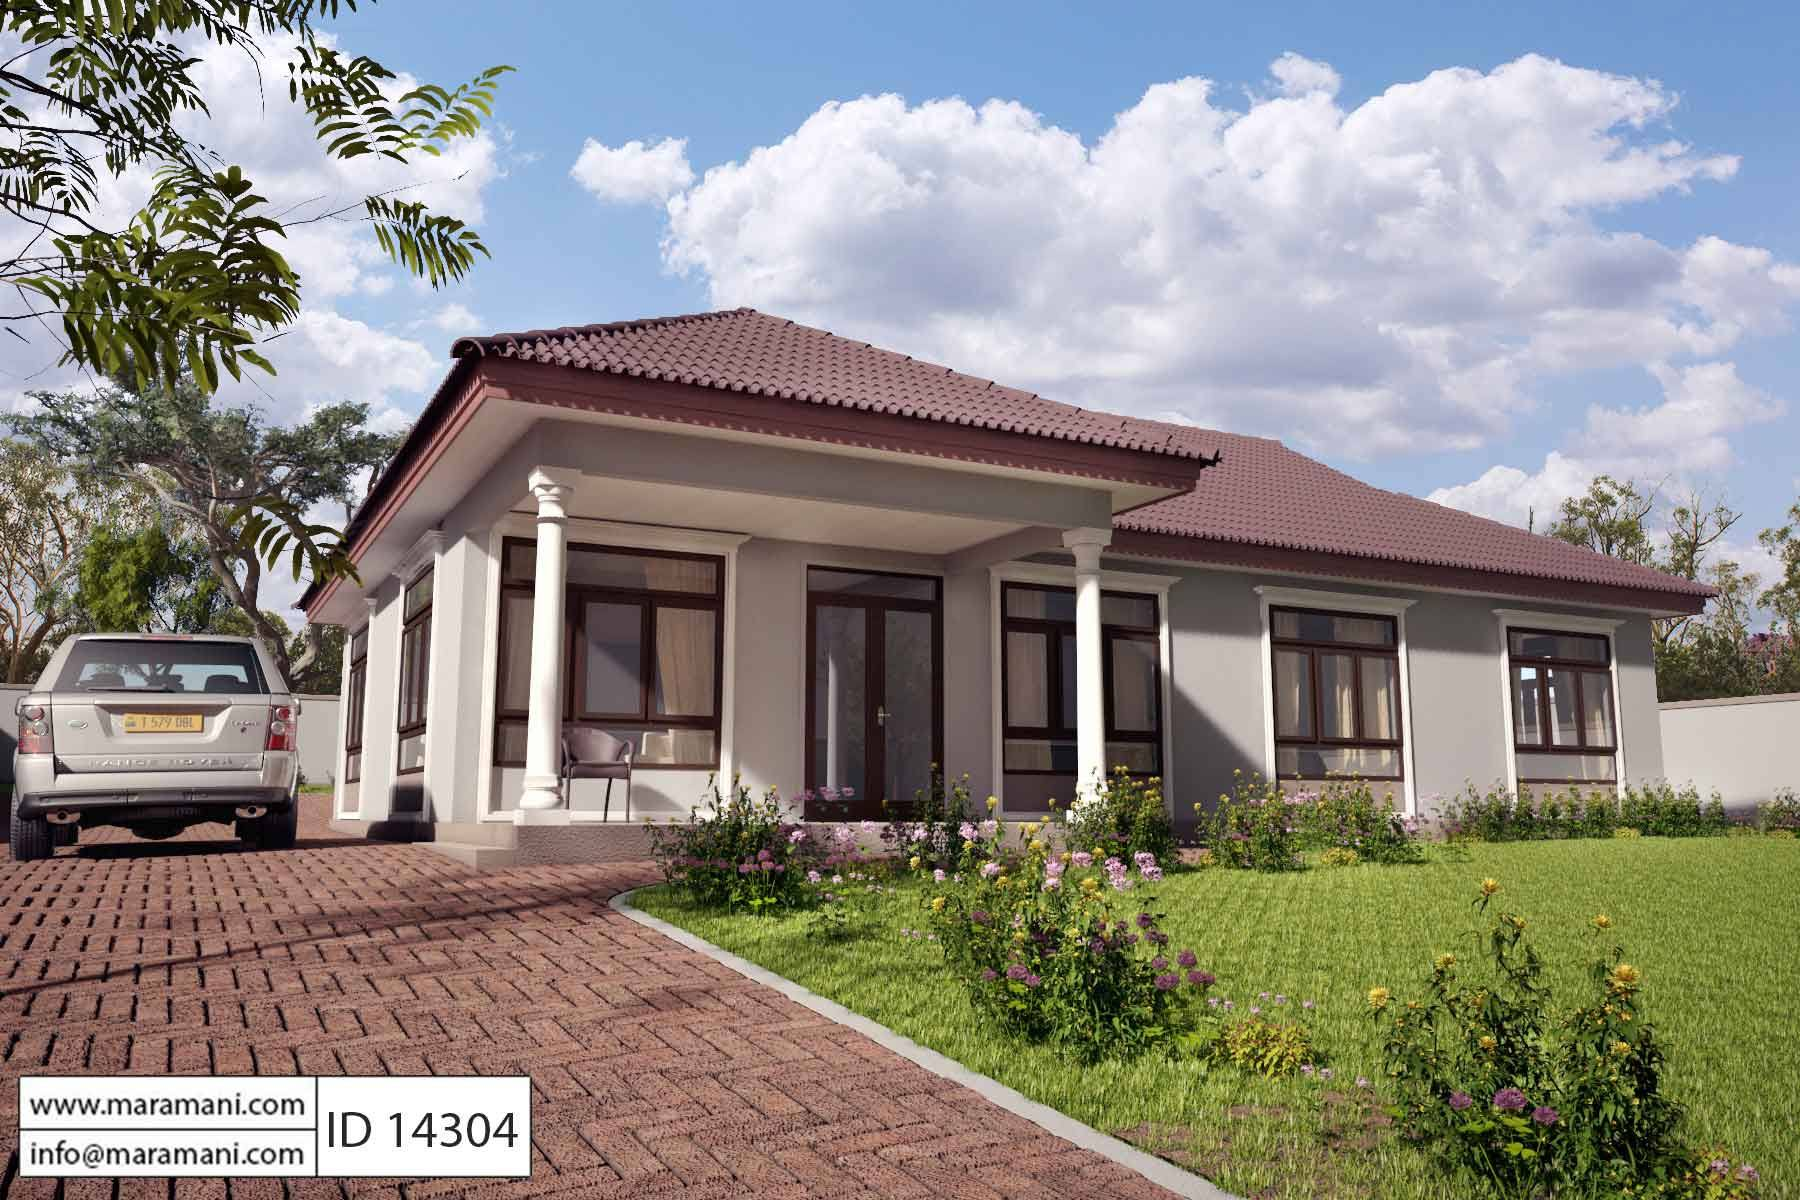 House Designs And Plans Design Room Nice design quotes House